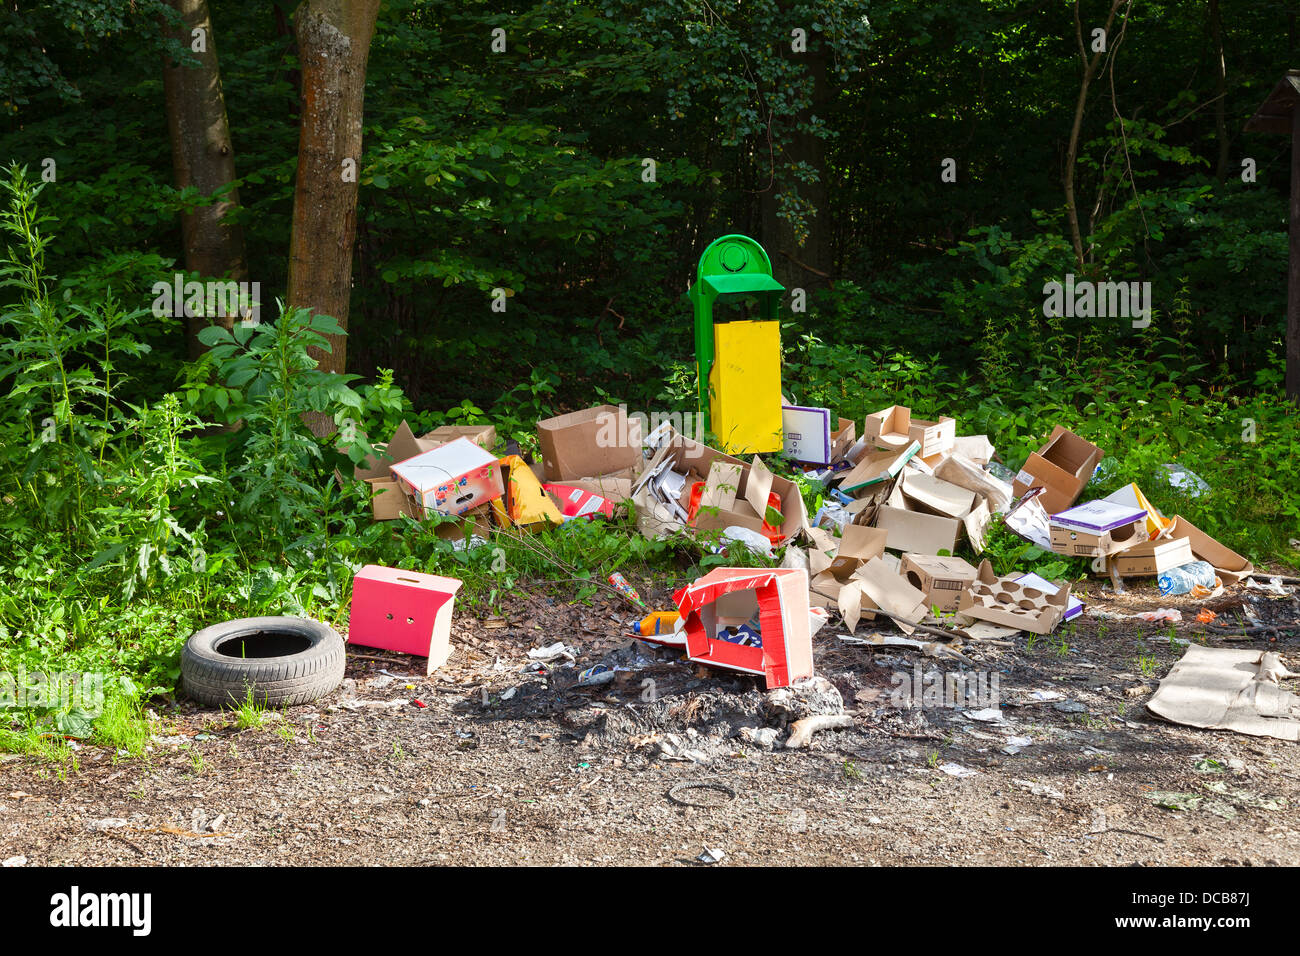 Garbage in landfill near forest - environment pollution. - Stock Image